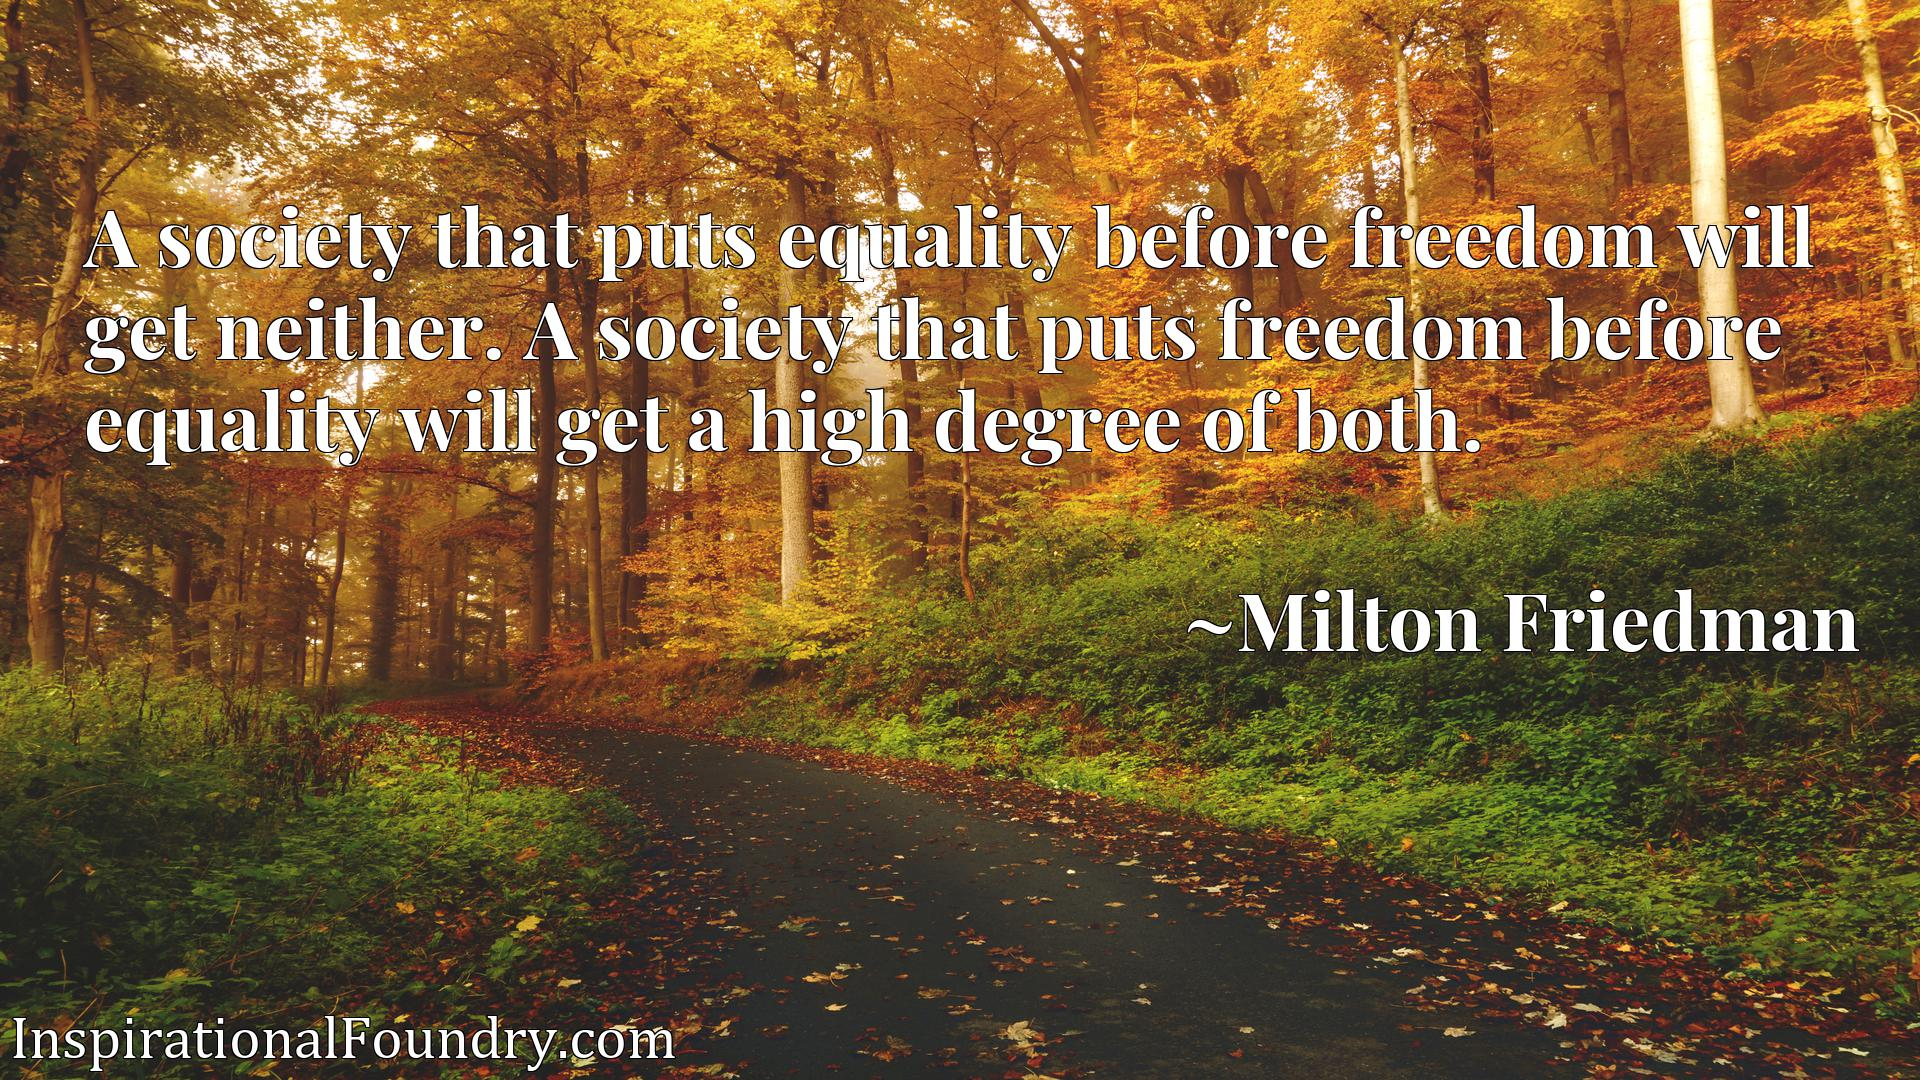 A society that puts equality before freedom will get neither. A society that puts freedom before equality will get a high degree of both.